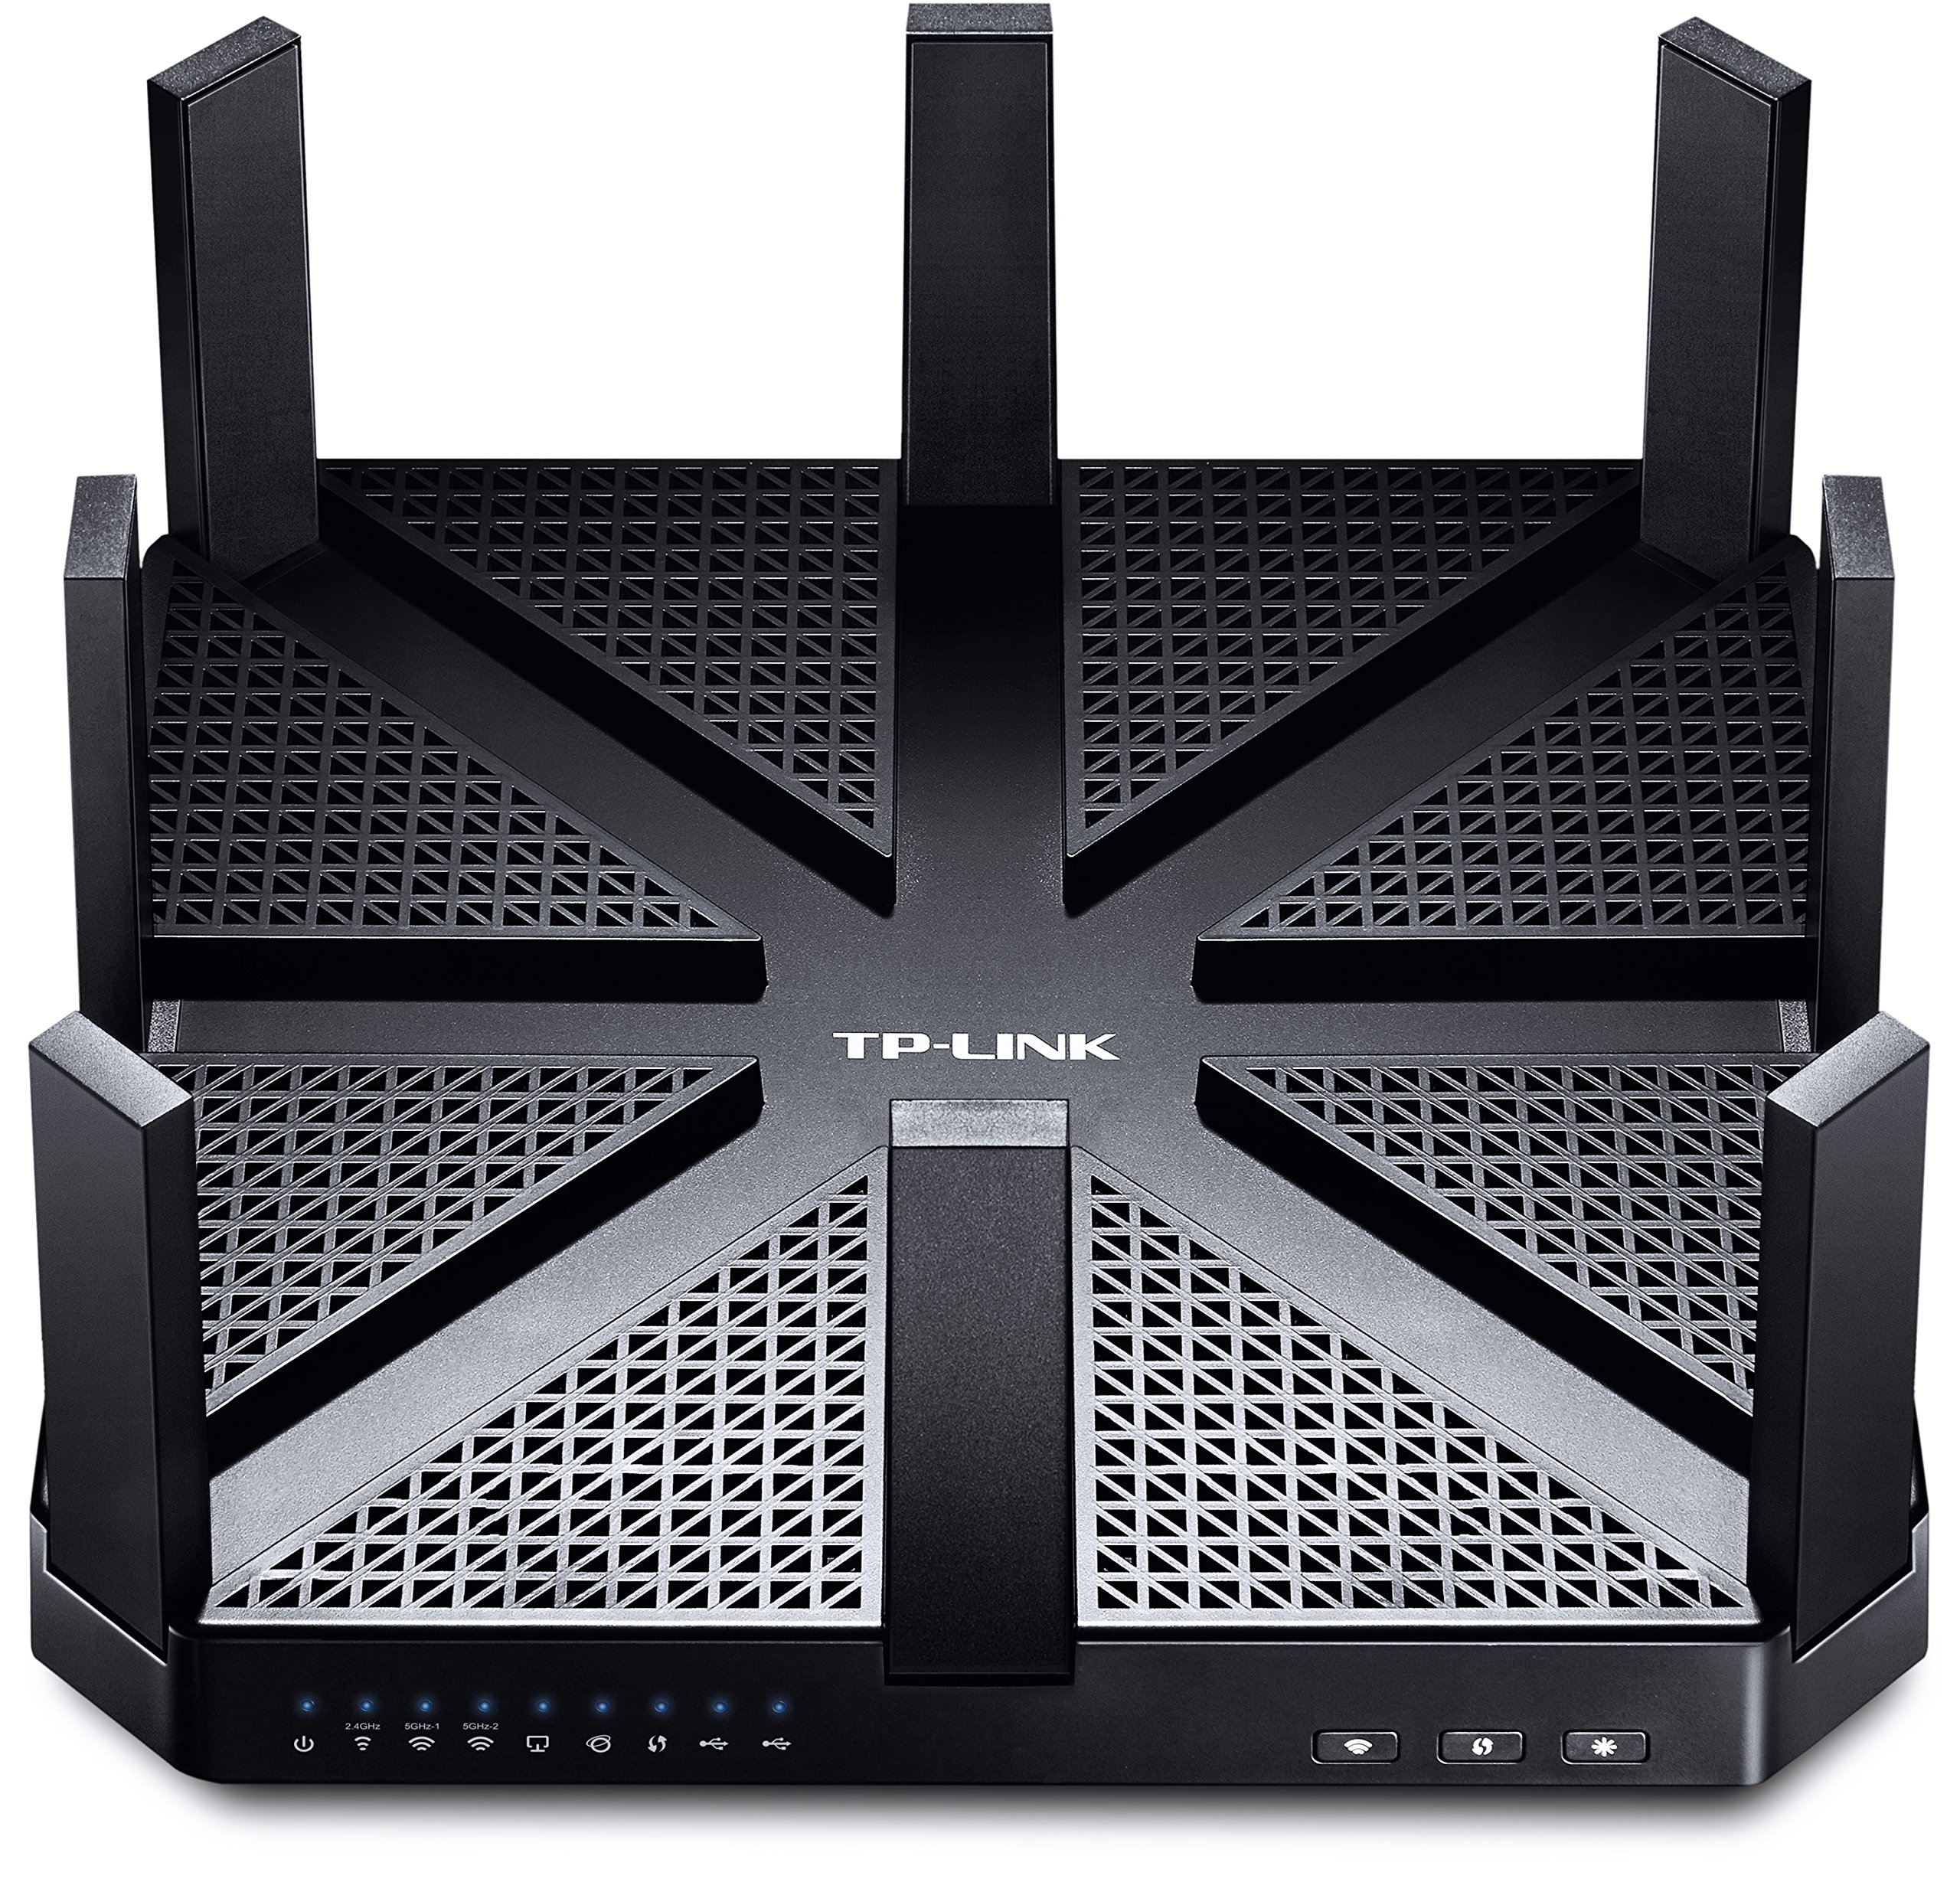 TP-Link AD7200 Wireless Wi-Fi Tri-Band Gigabit Router (Talon AD7200) by TP-Link